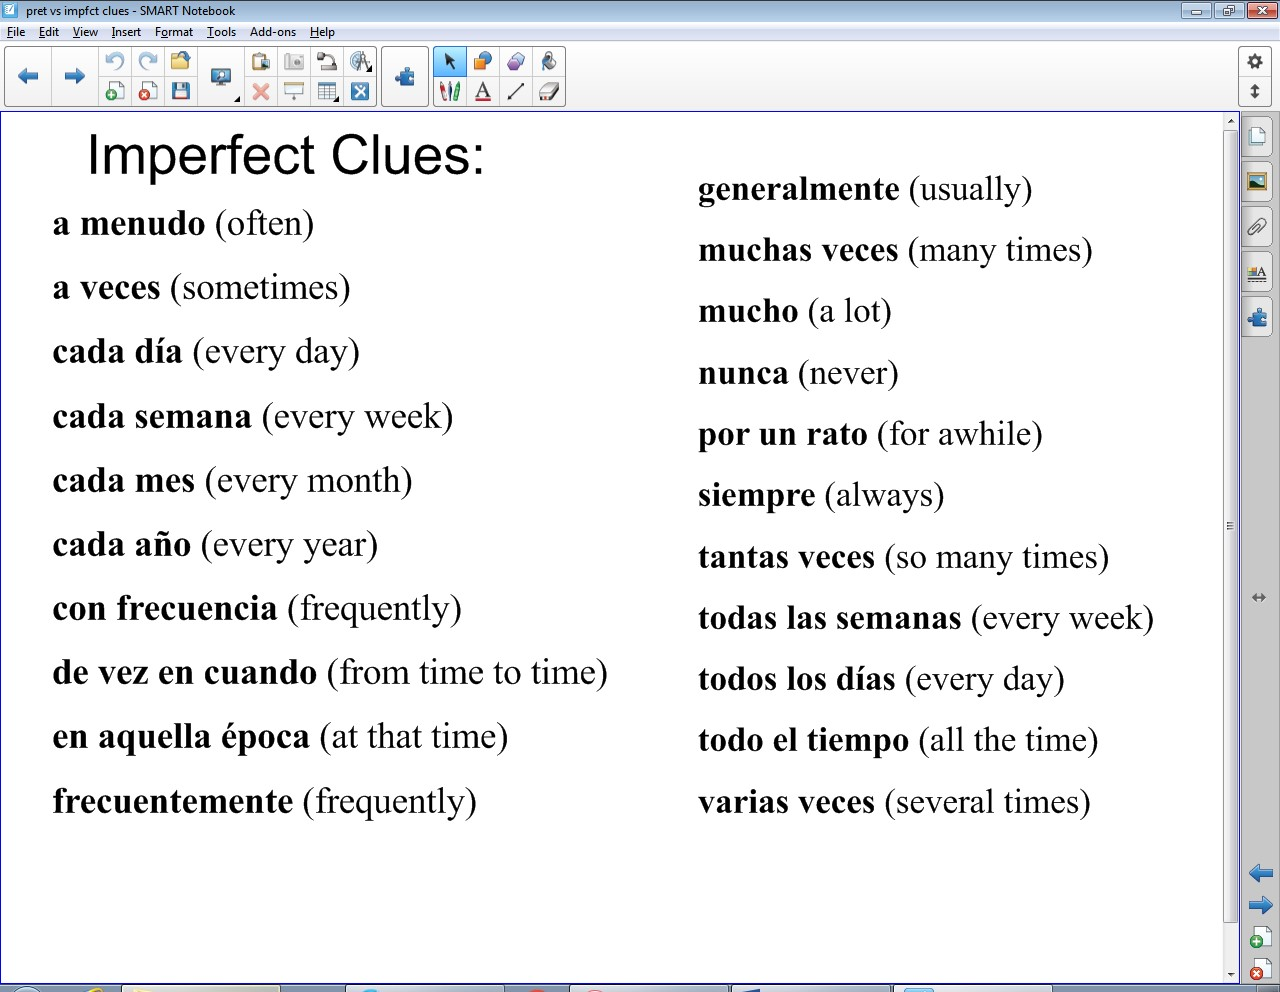 imperfect clues